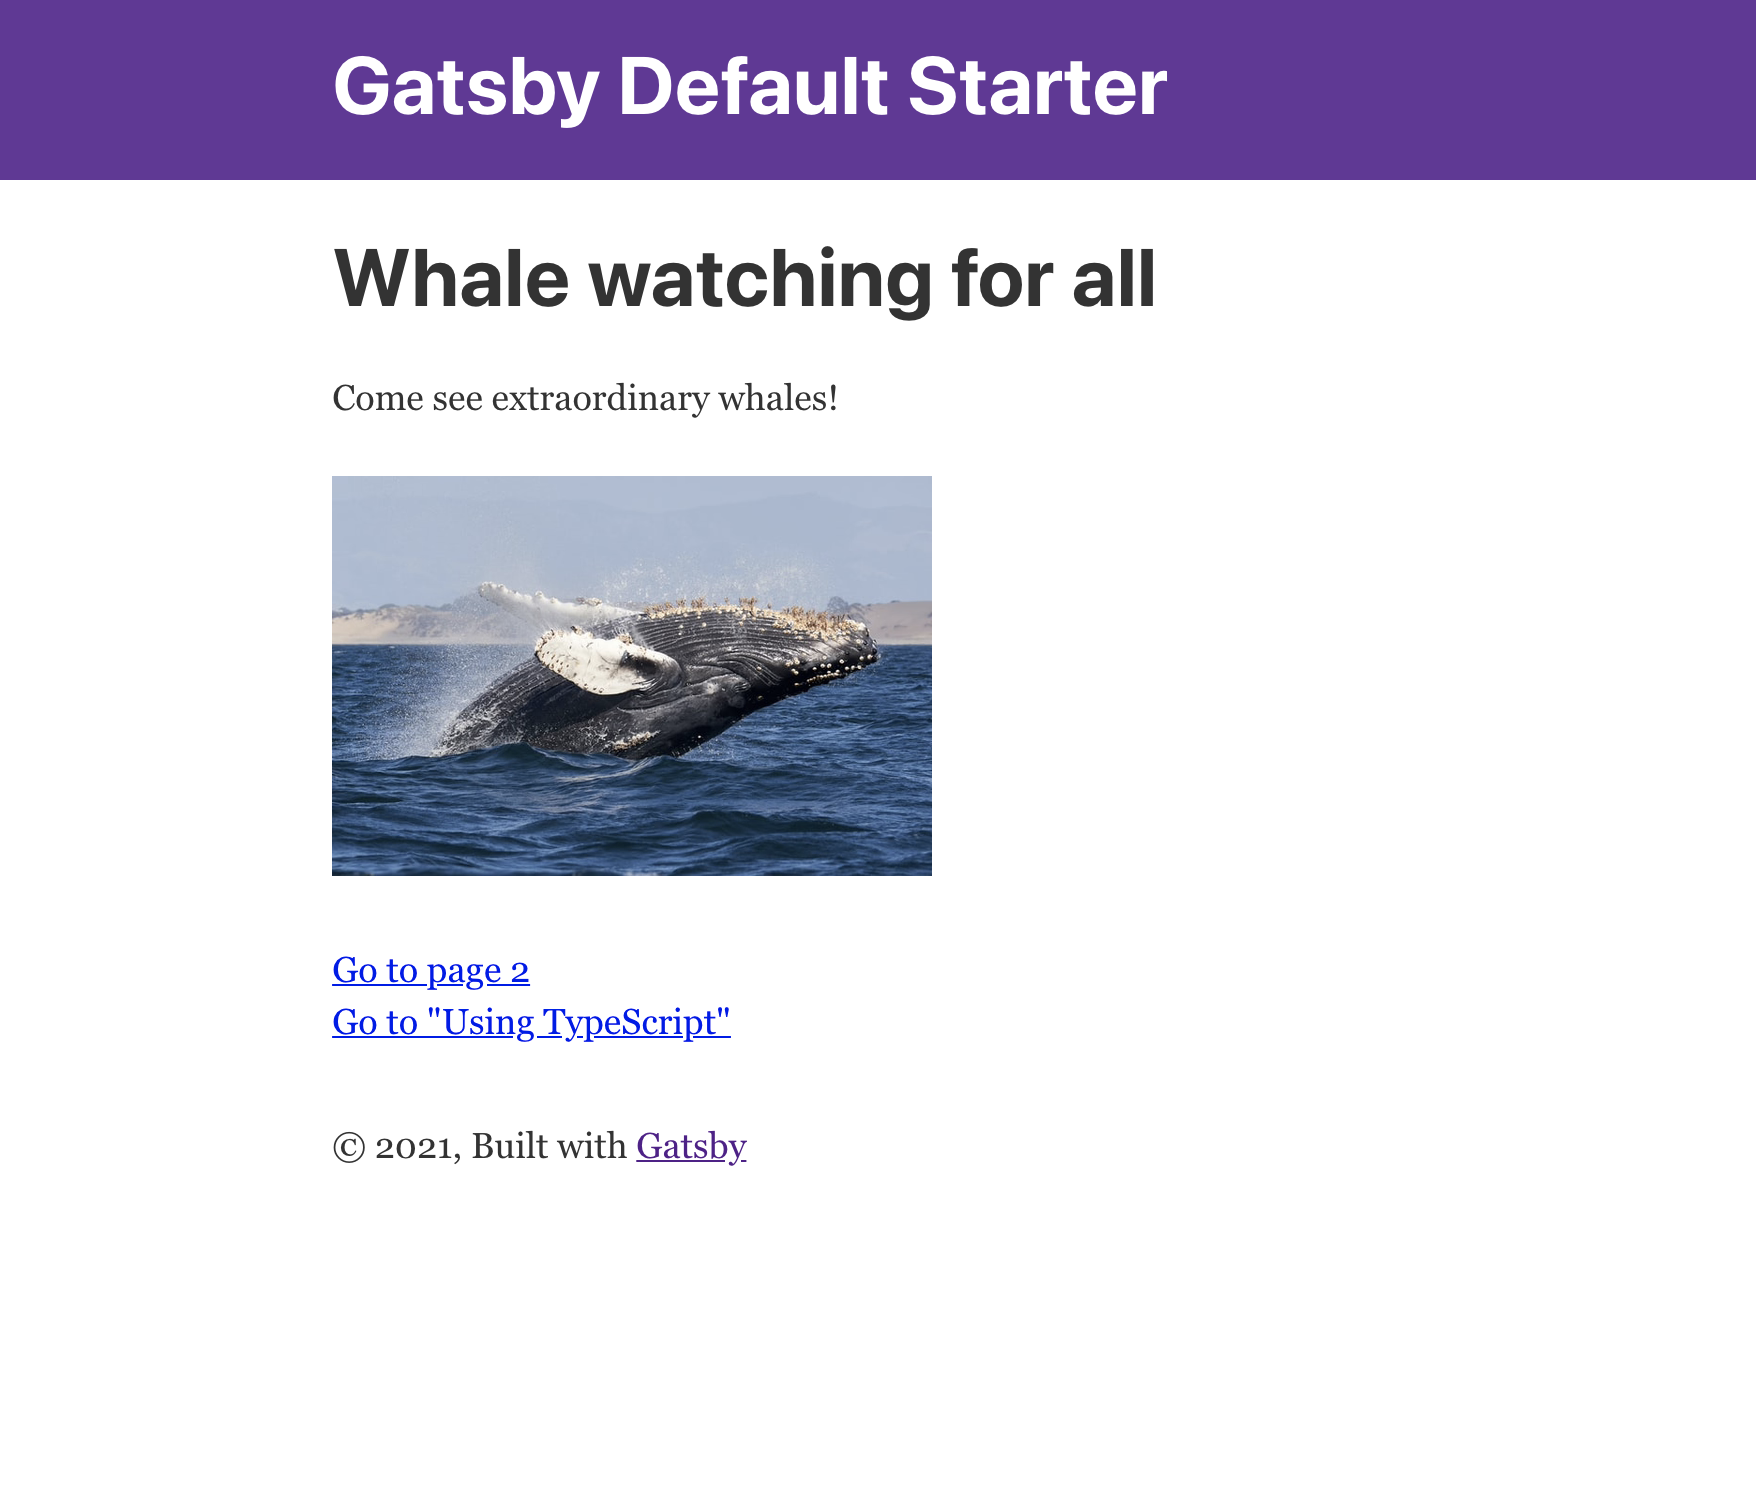 Gatsby site with whale image and text.